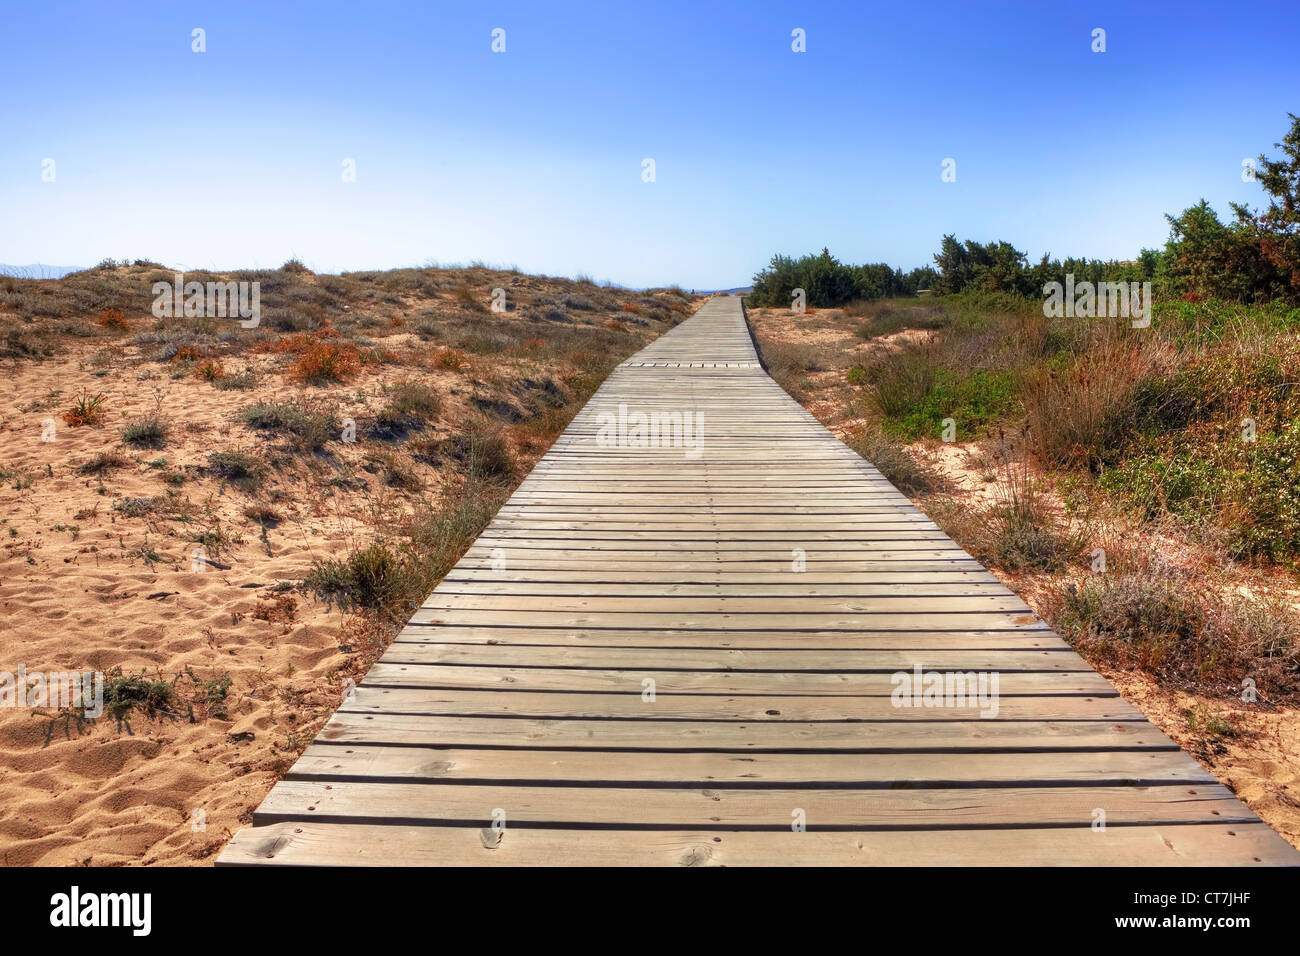 The famous dunes of Plaka, Naxos Greece - Stock Image